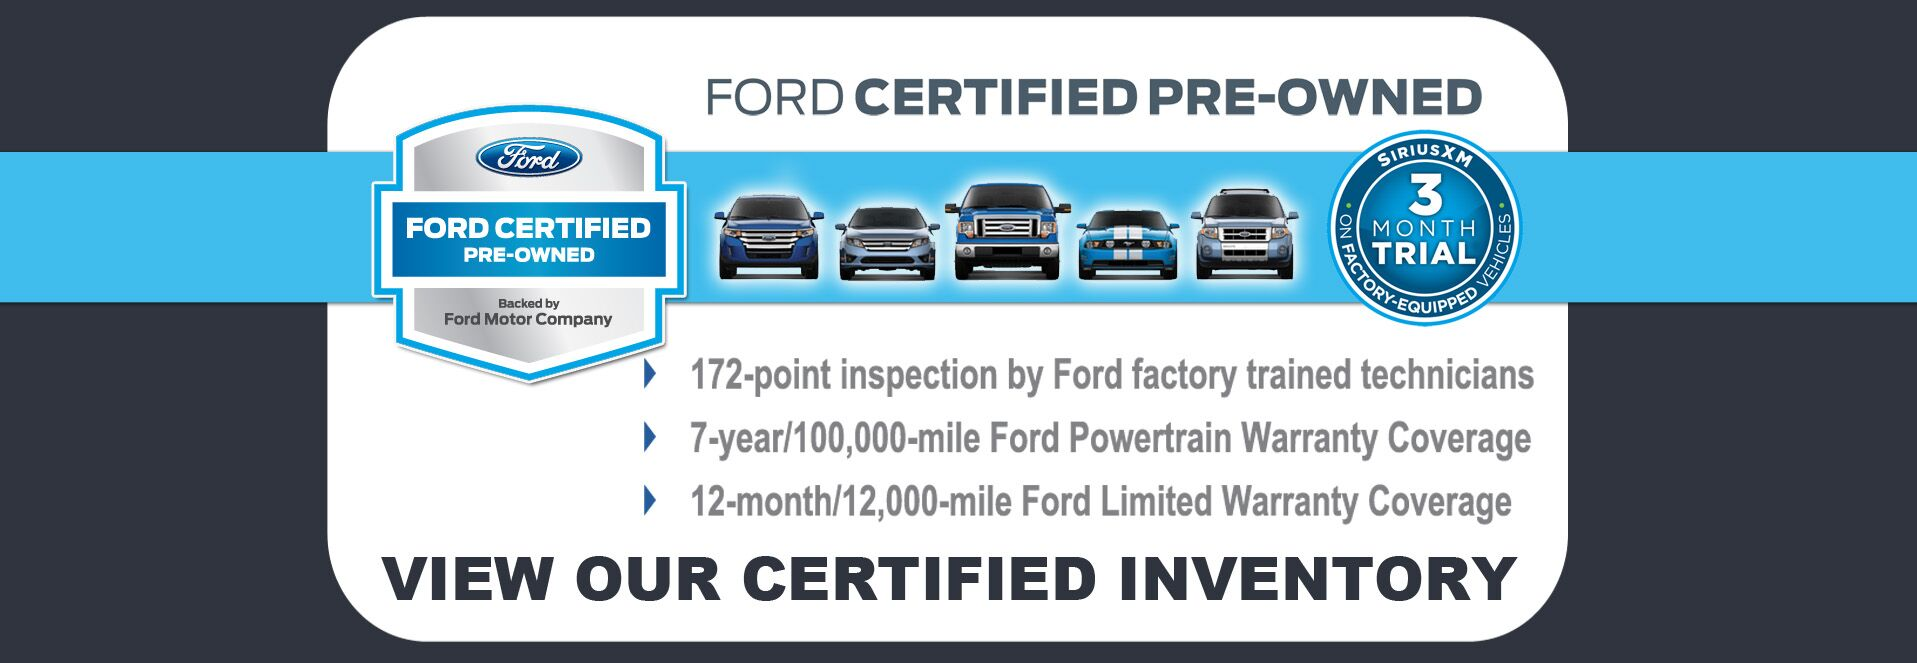 Certified Pre-Owned at Dahl Ford  sc 1 st  Dahl Ford & Why Buy Certified? | Ford CPO Davenport IA markmcfarlin.com